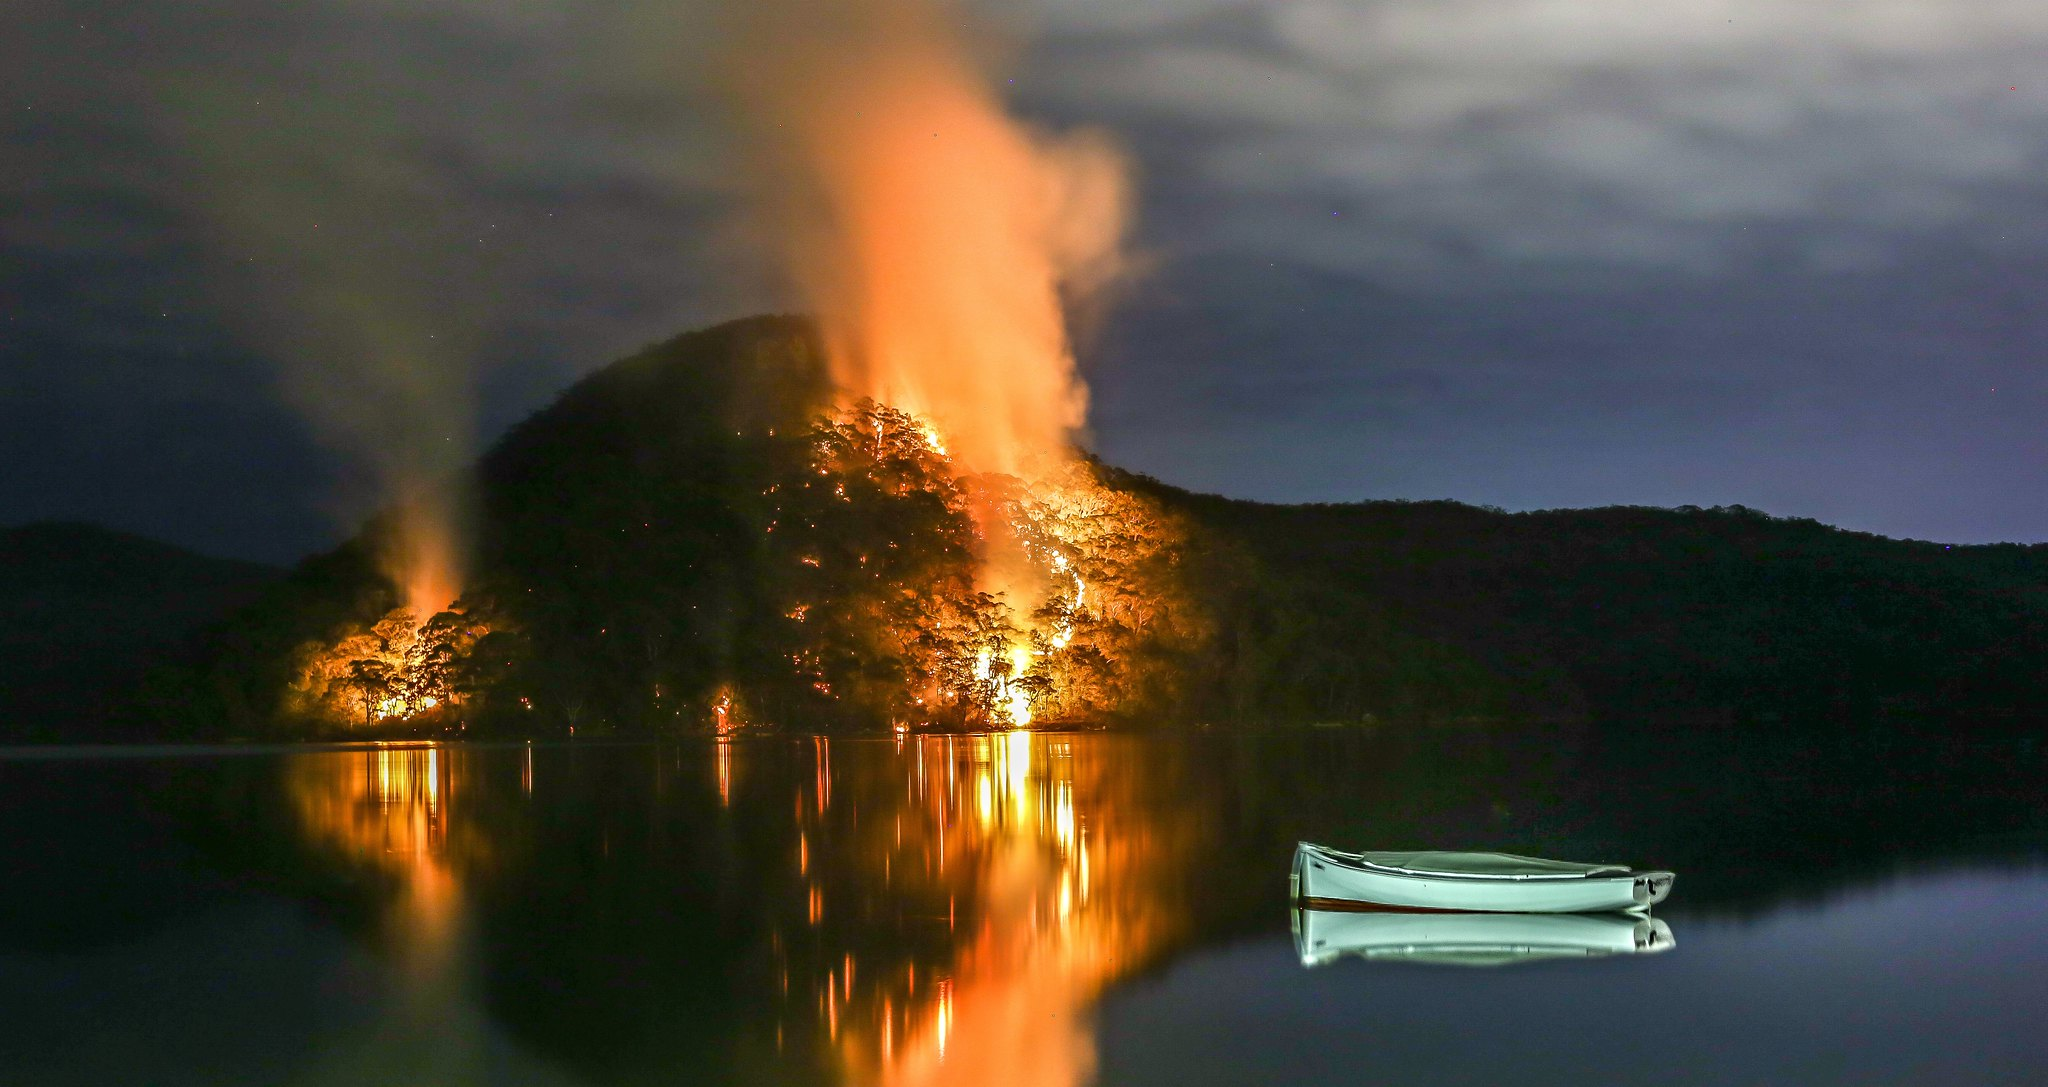 Bush Fires across Woy Woy Bay in New South Wales, Australia, Photo by Martin Snicer (CC BY-ND 2.0)